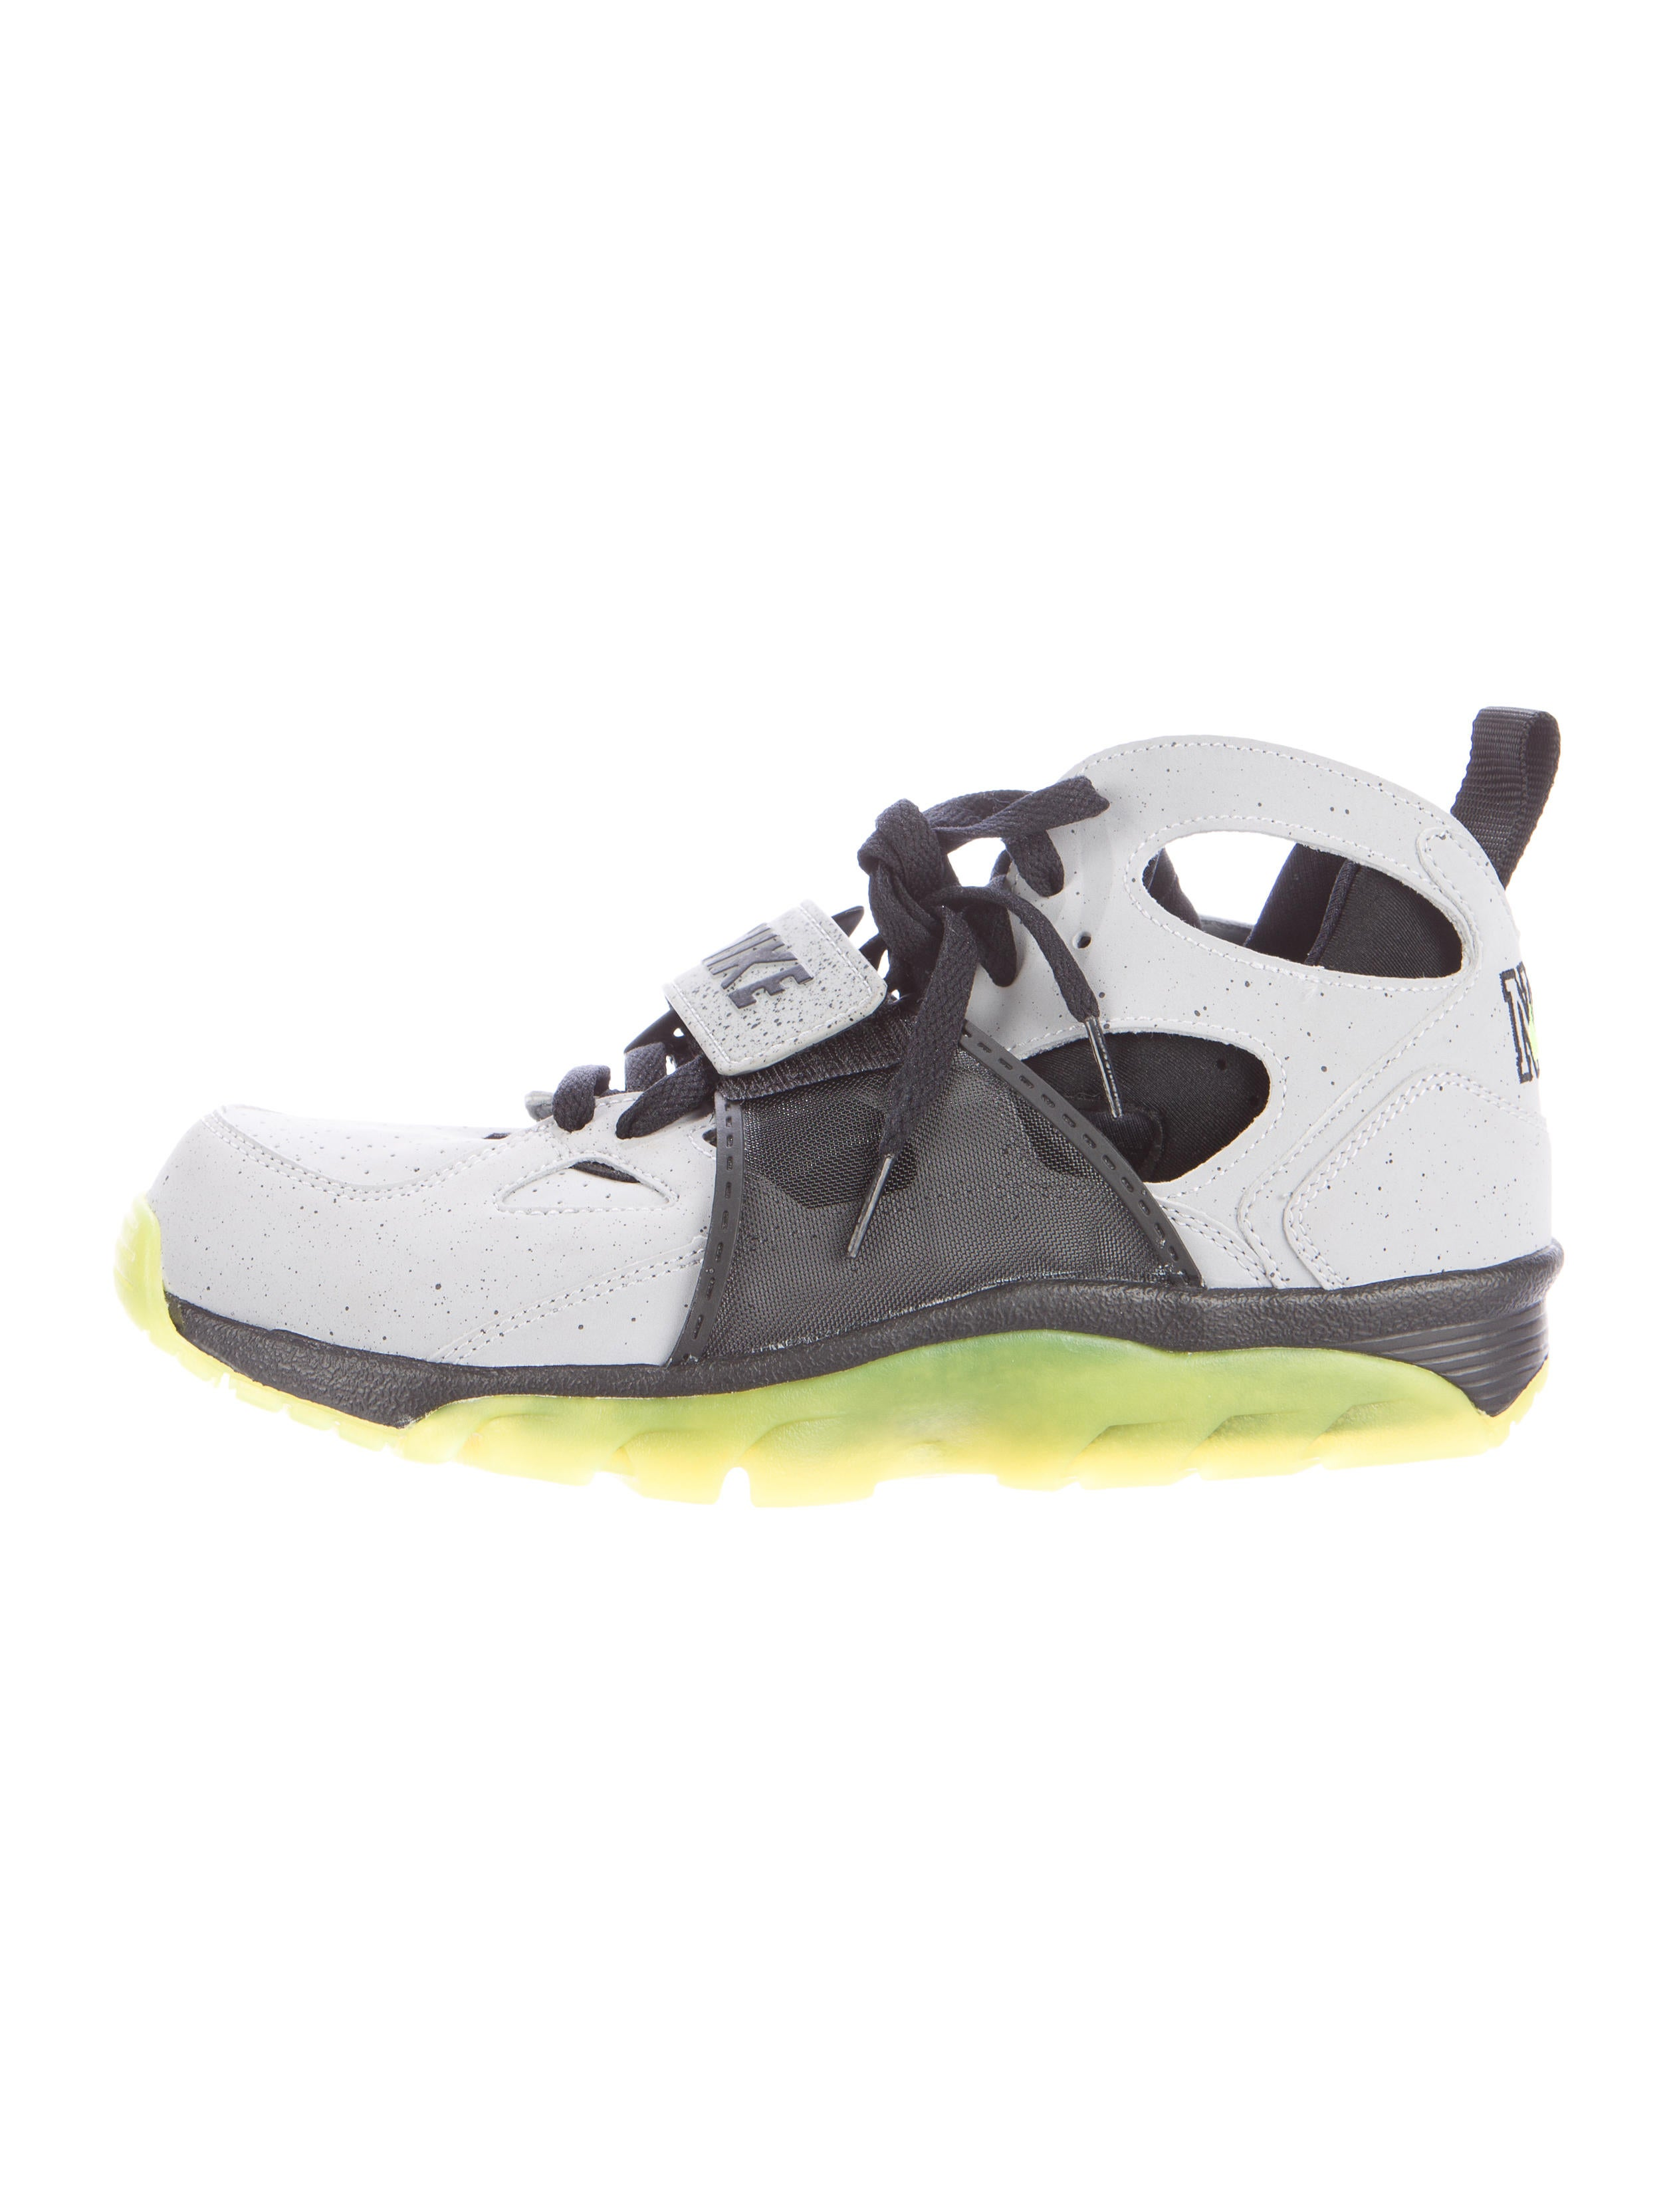 2d2154aff45d Nike Air Trainer Huarache NYC Sneakers - Shoes - WU220581